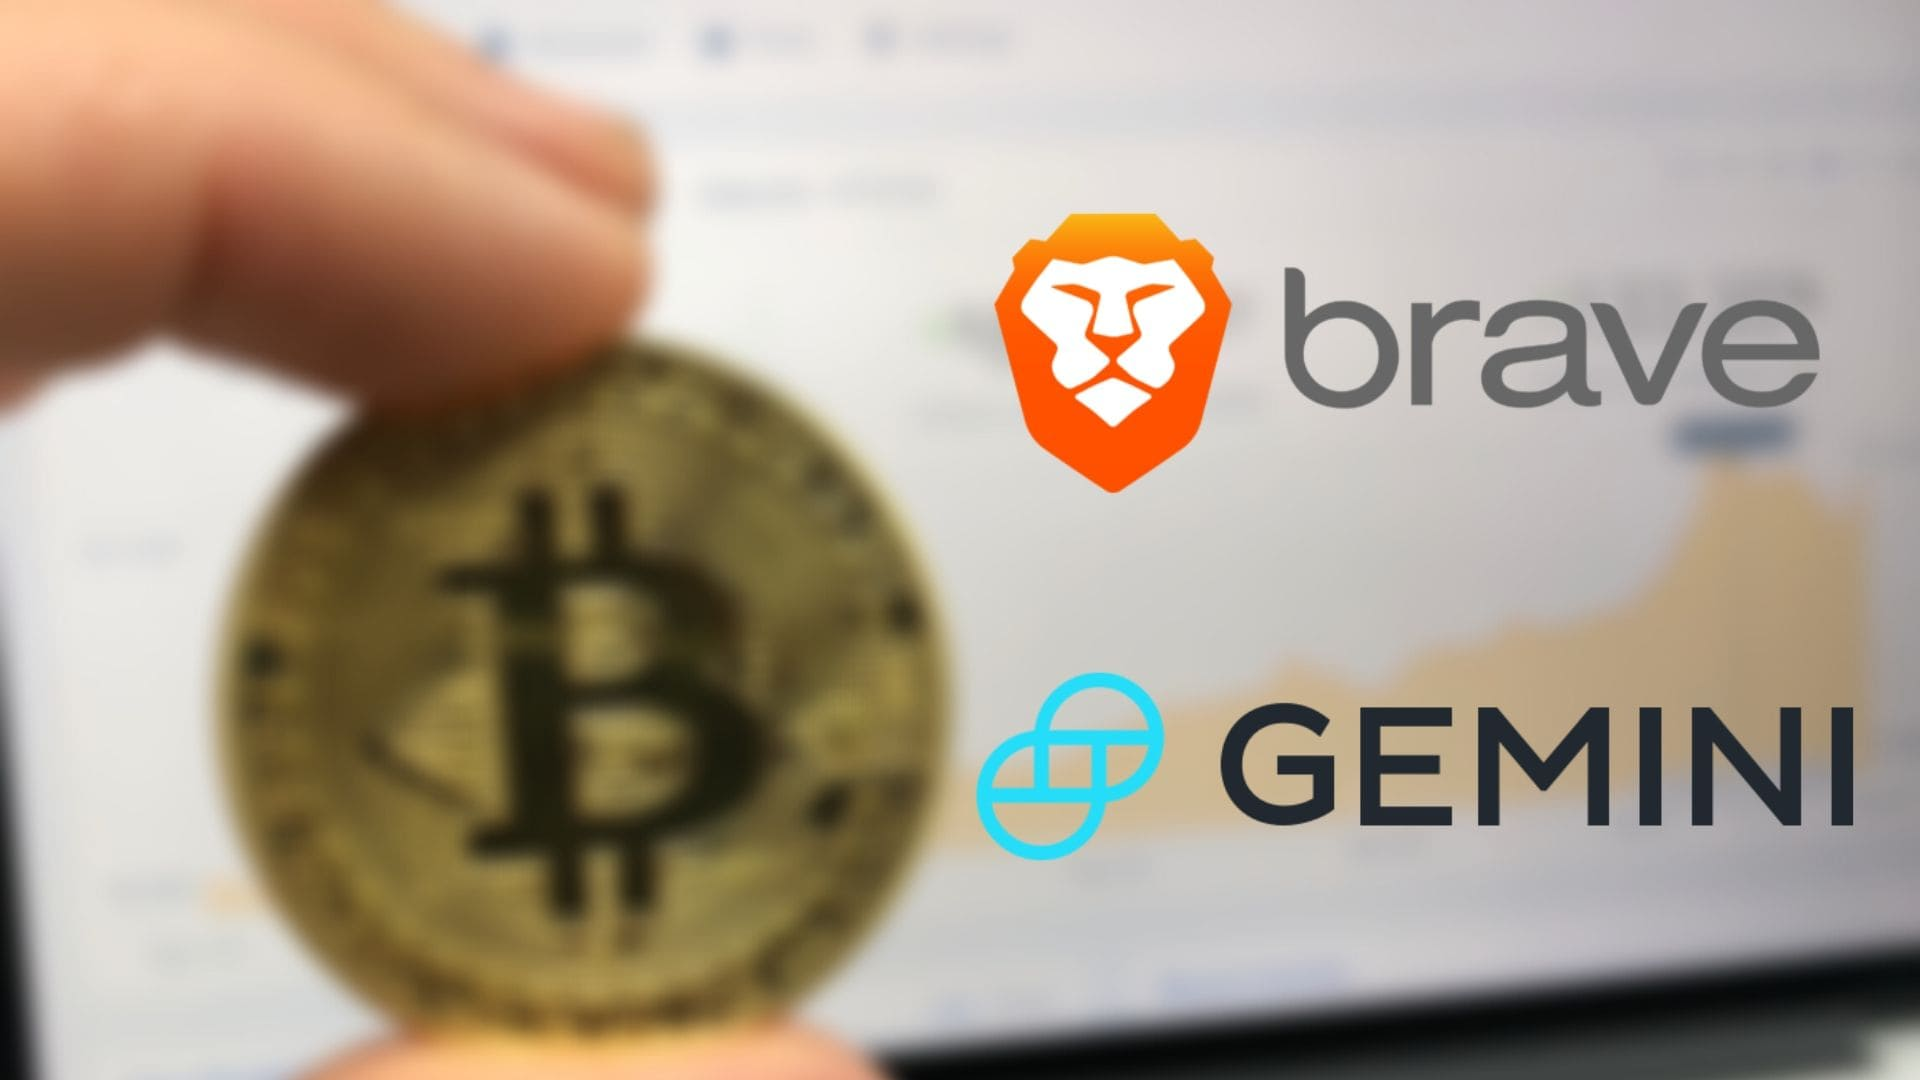 Trading with Brave Tokens on Gemini Starting April 24